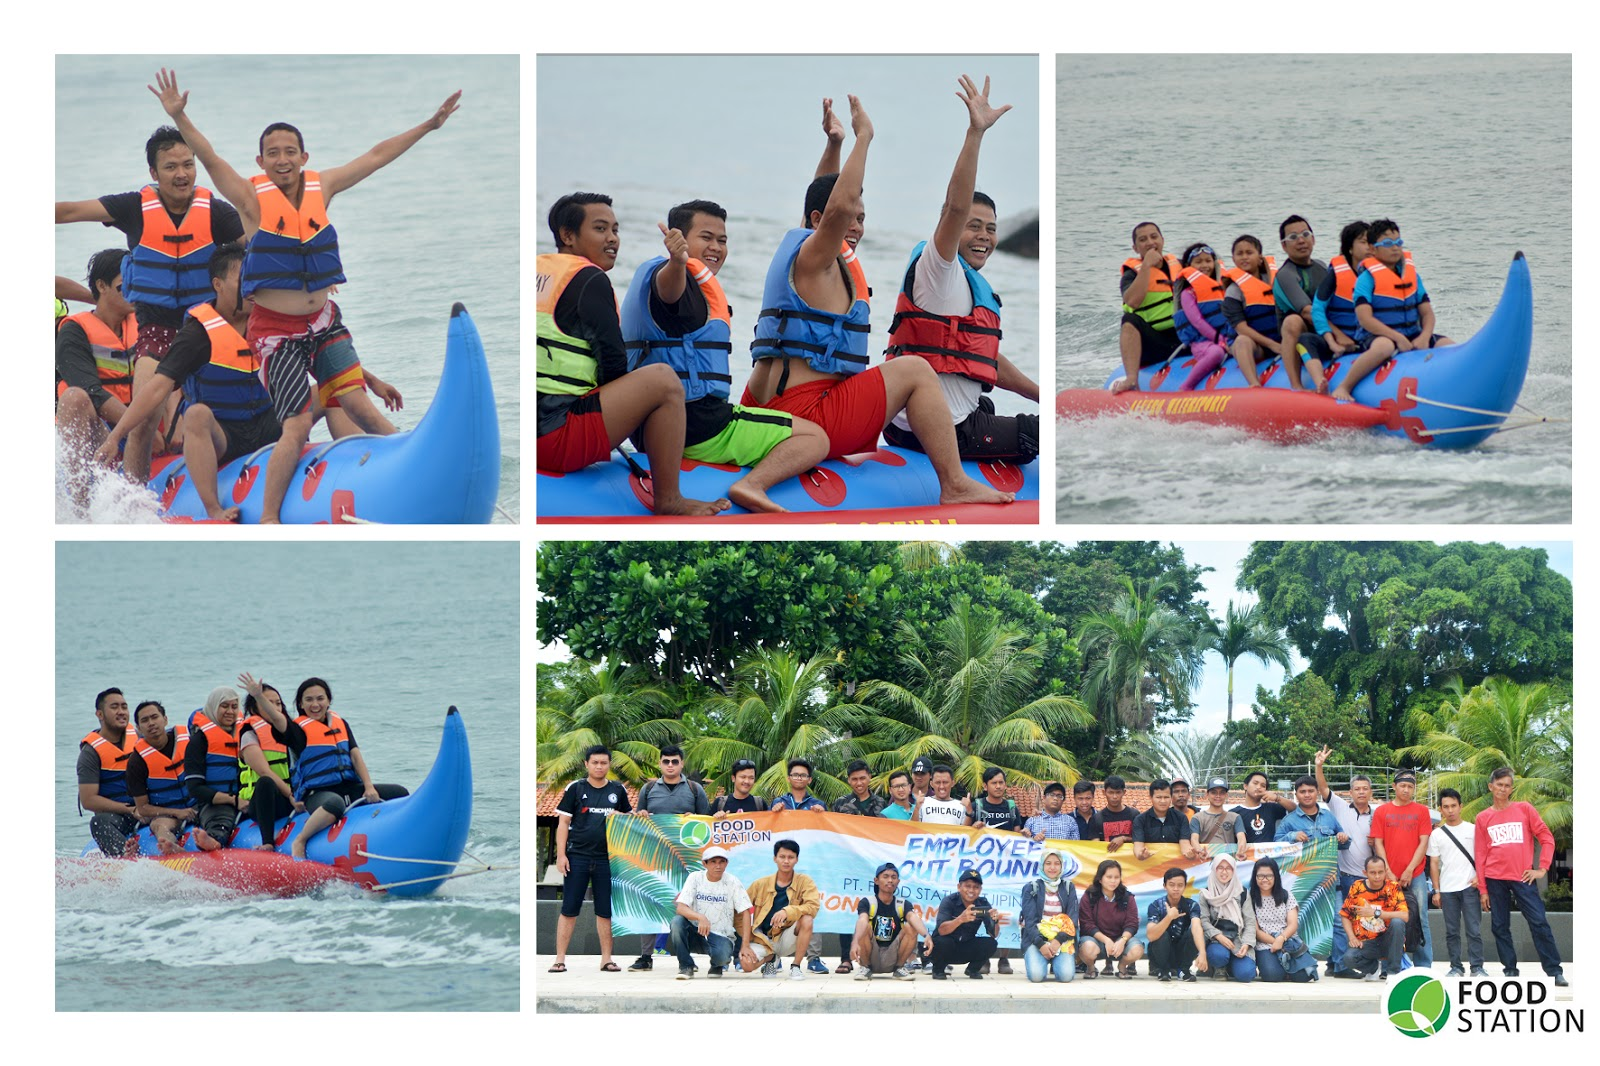 Employee Outbound 2018 PT Food Station Tjipinang Jaya to Mambruk Anyer